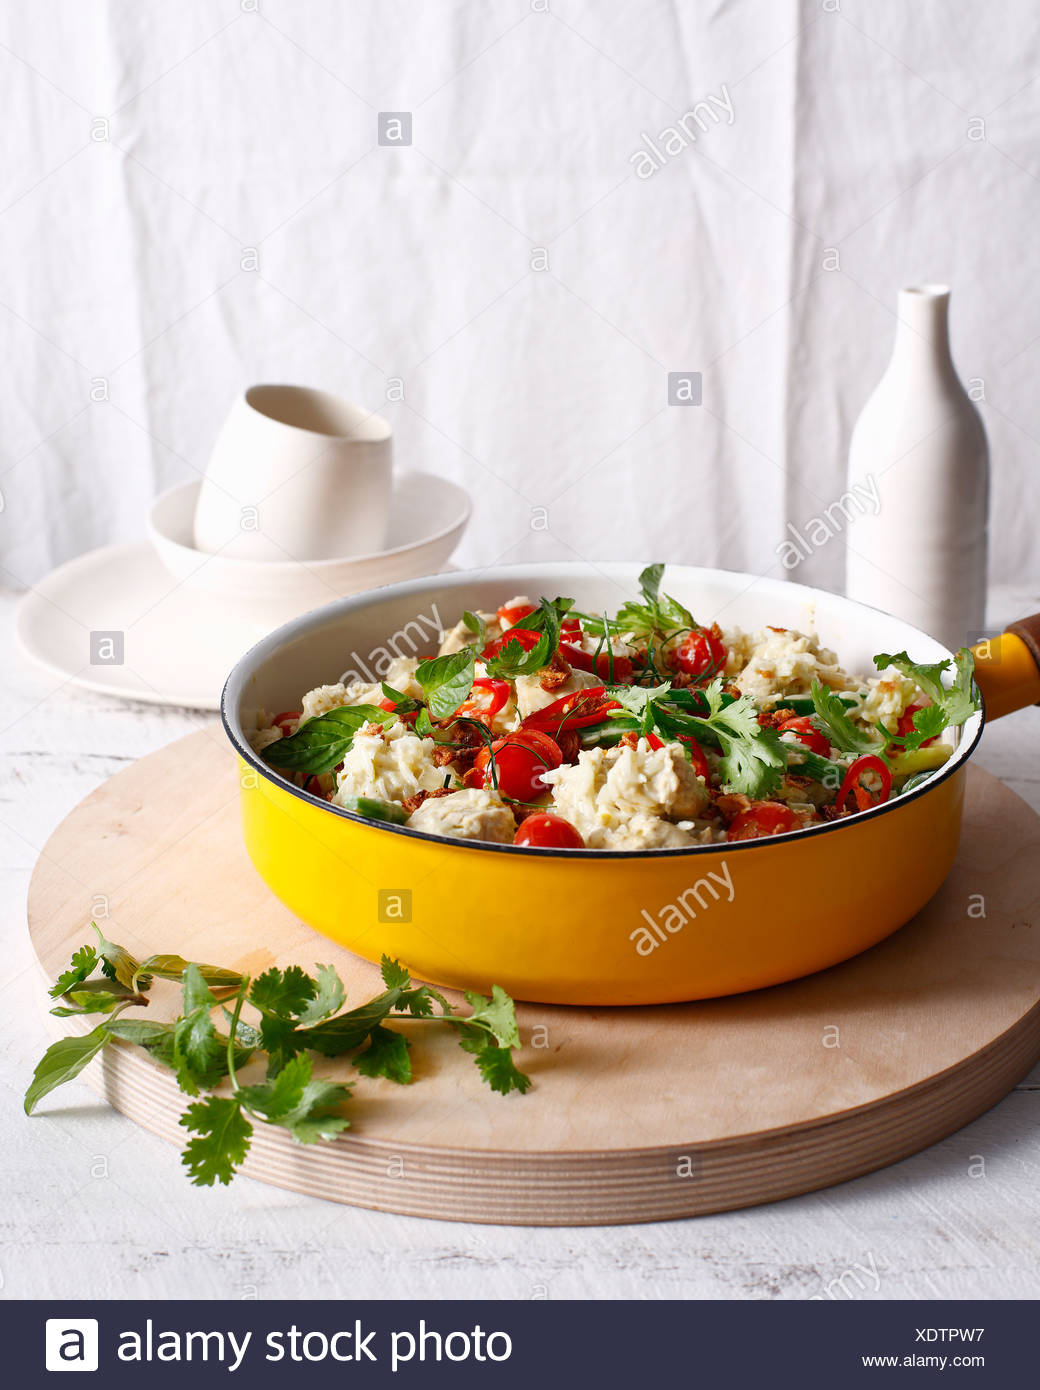 Pan of Thai chicken and herbs - Stock Image